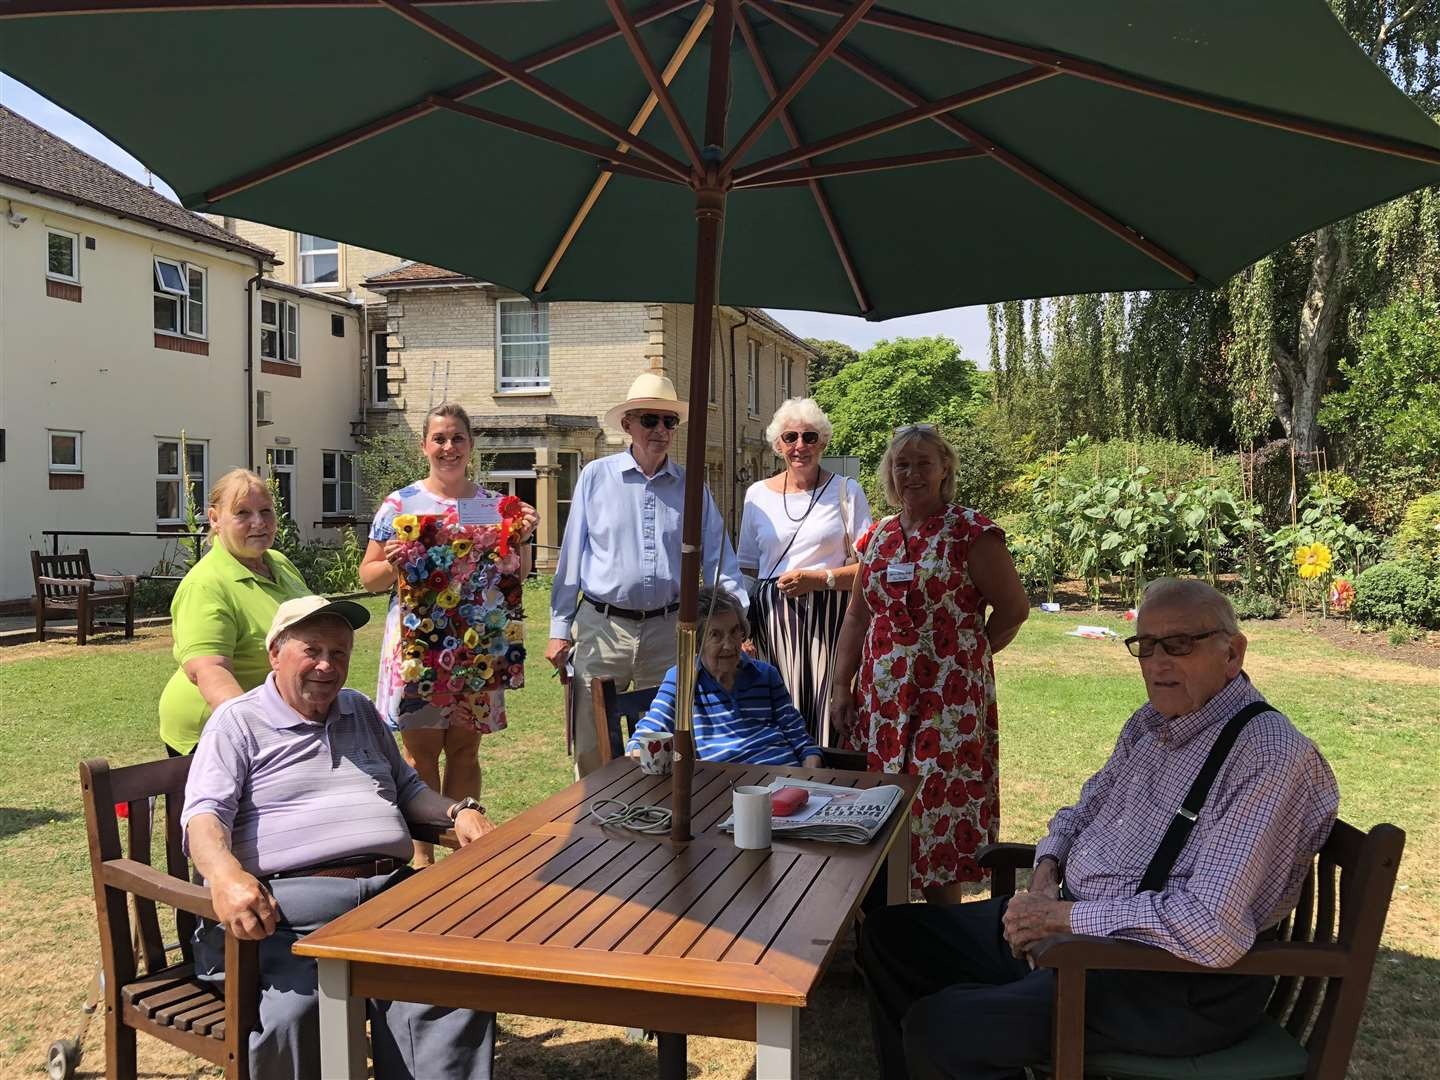 Residents at Melford Court Care Home in Long Melford take part in the 2018 Stow in Bloom gardening competition. (3316938)